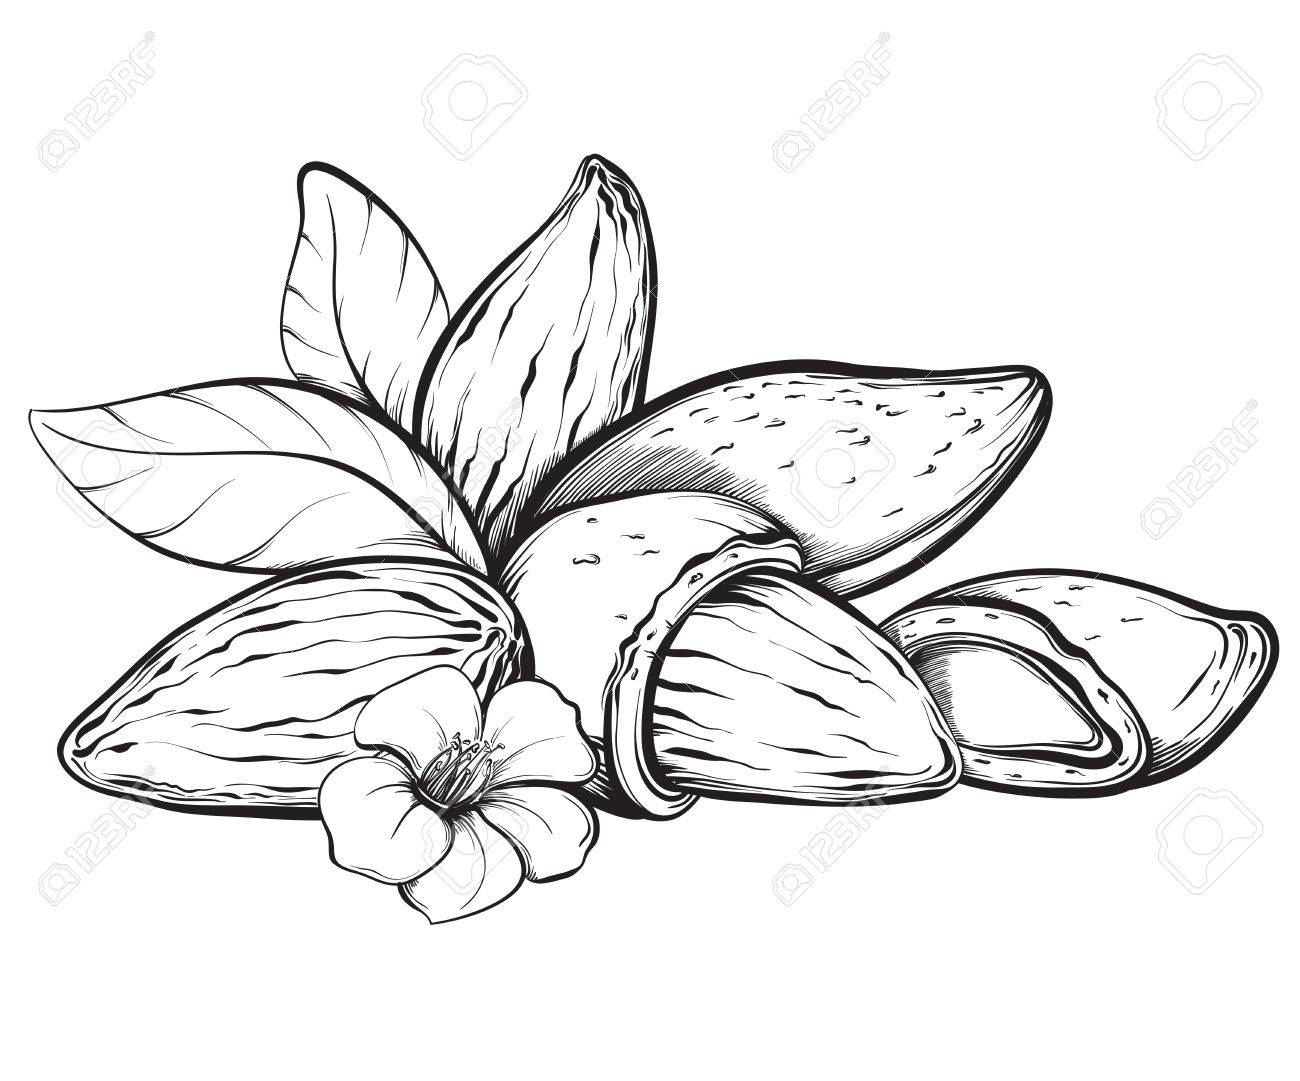 1300x1081 Almonds. Hand Drawn Sketches Vector Illustration On White